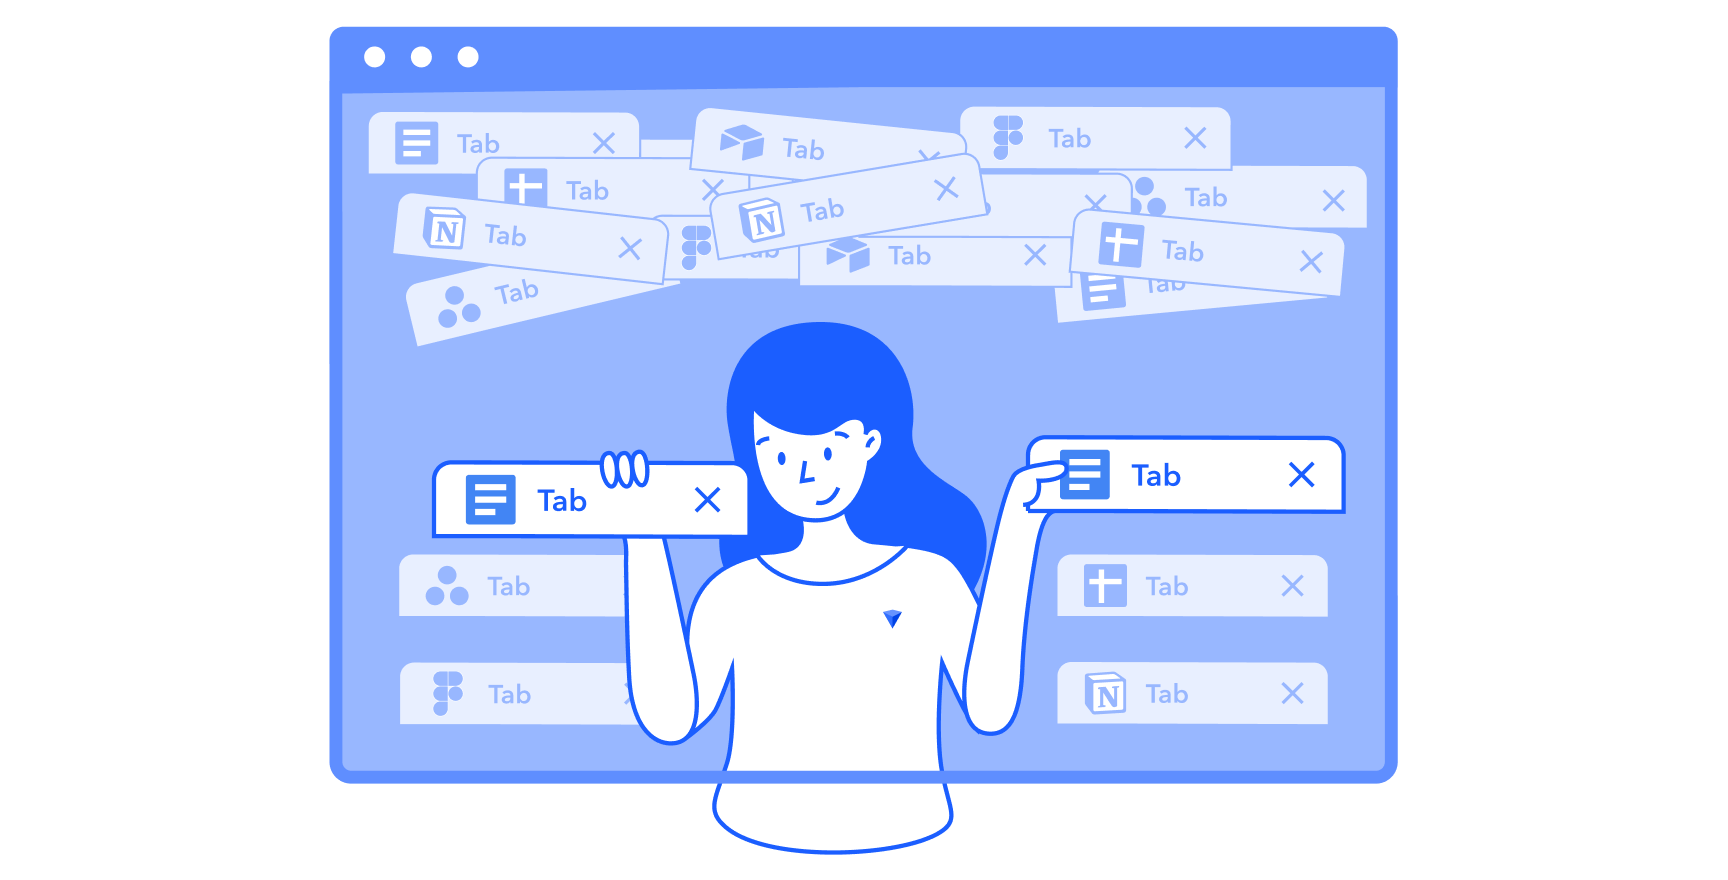 From a sea of disorganized browser tabs, a character organizes her tabs into neat sections